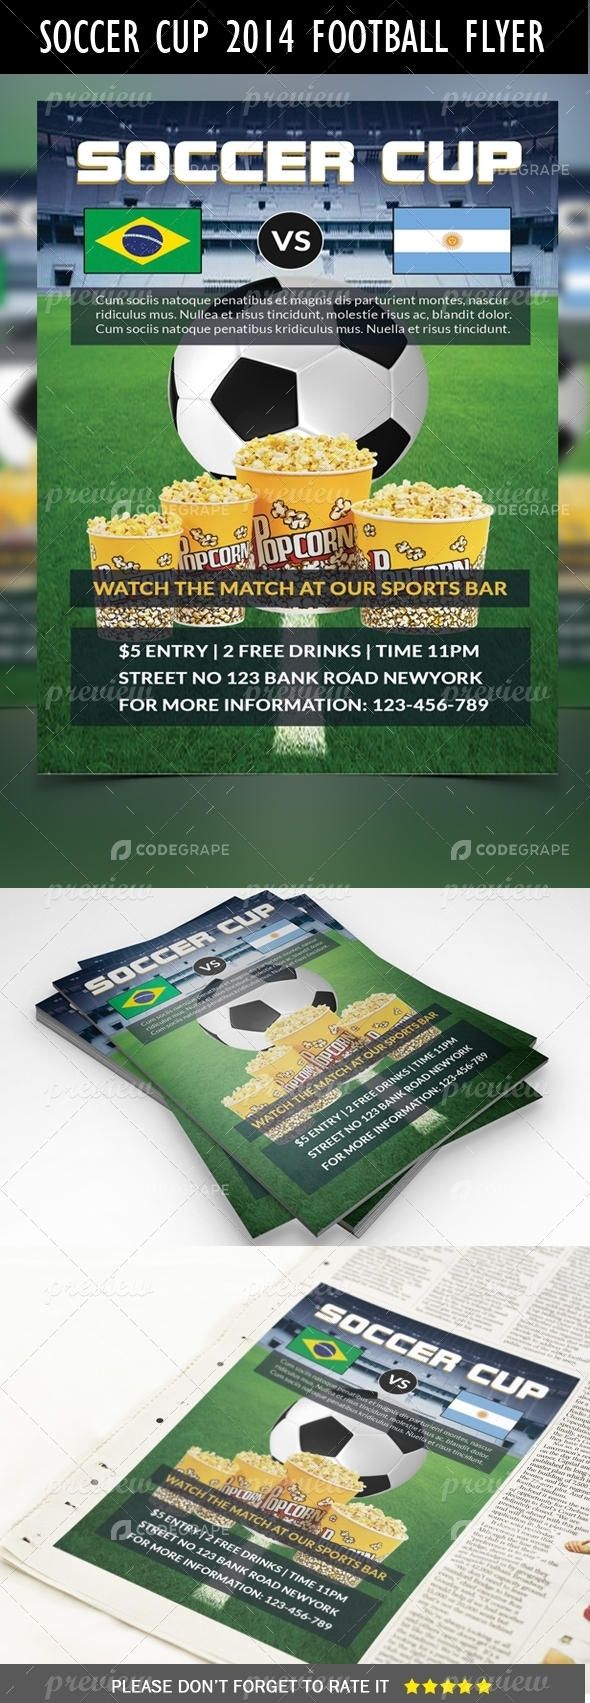 Soccer Cup 2014 Football Flyer